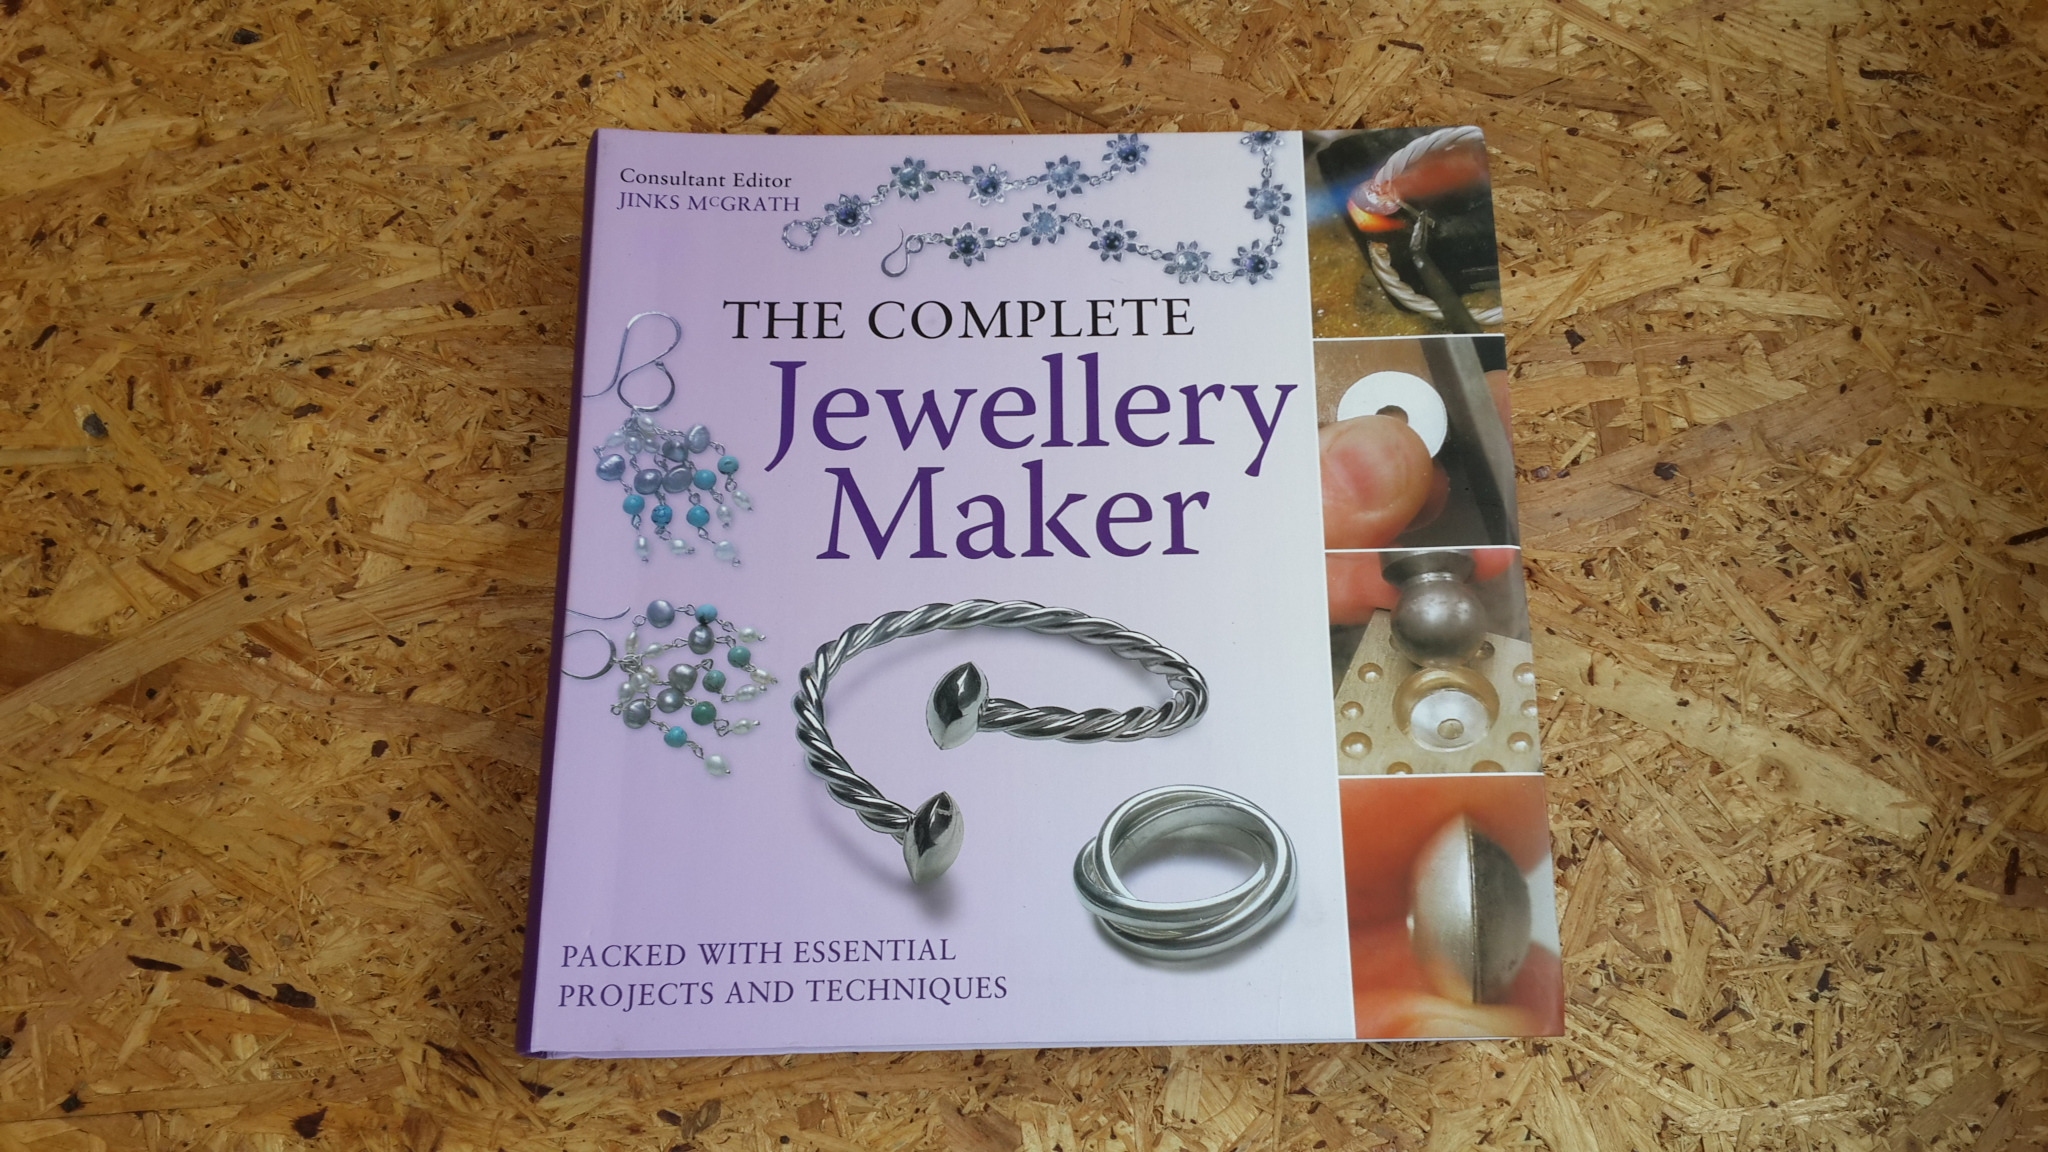 THE COMPLETE Jewellery Maker : JINKS McGRATH